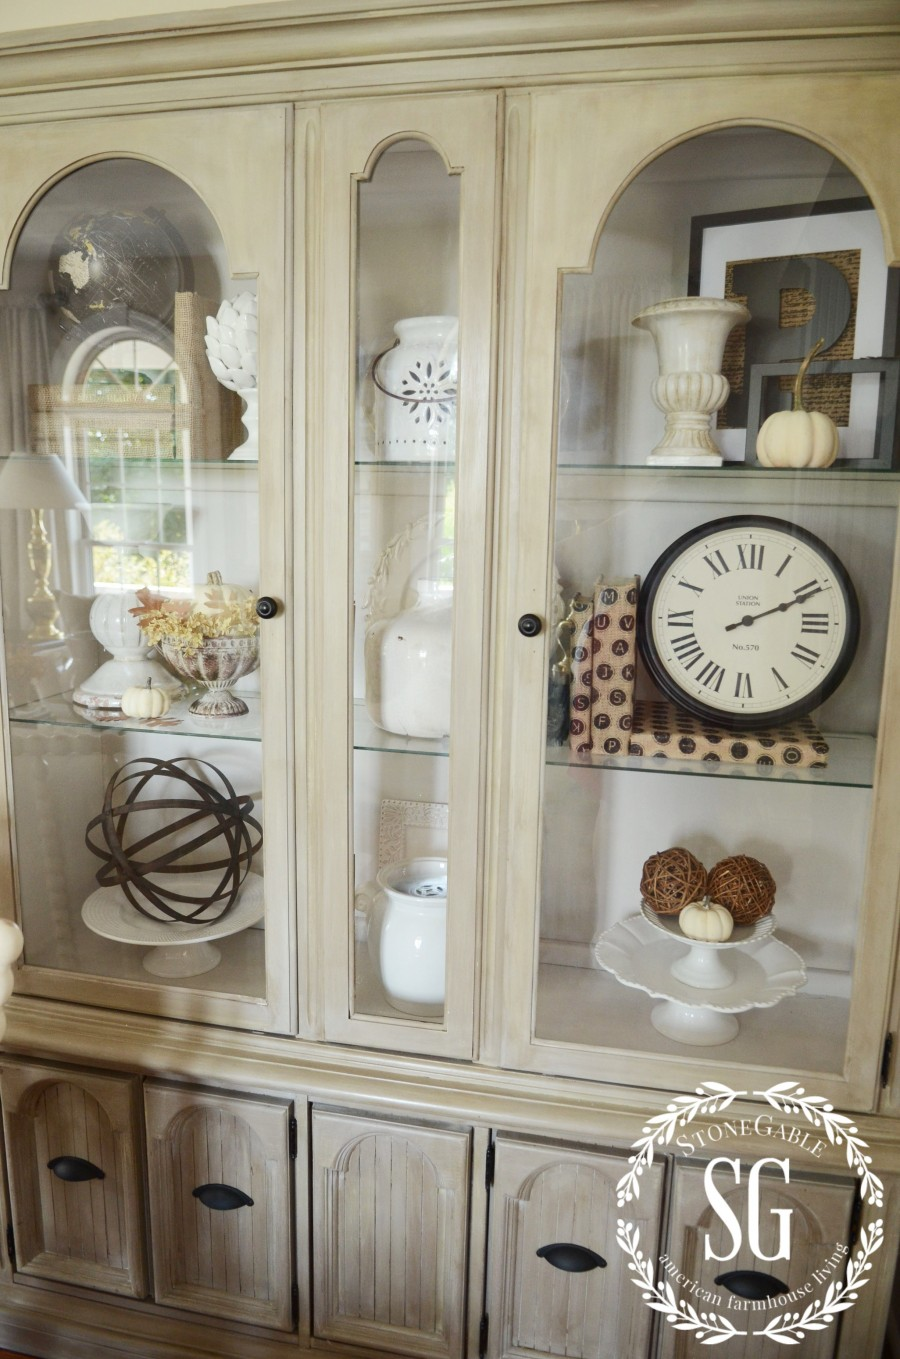 The magic of paint budget friendly ideas stonegable for Hutch decor